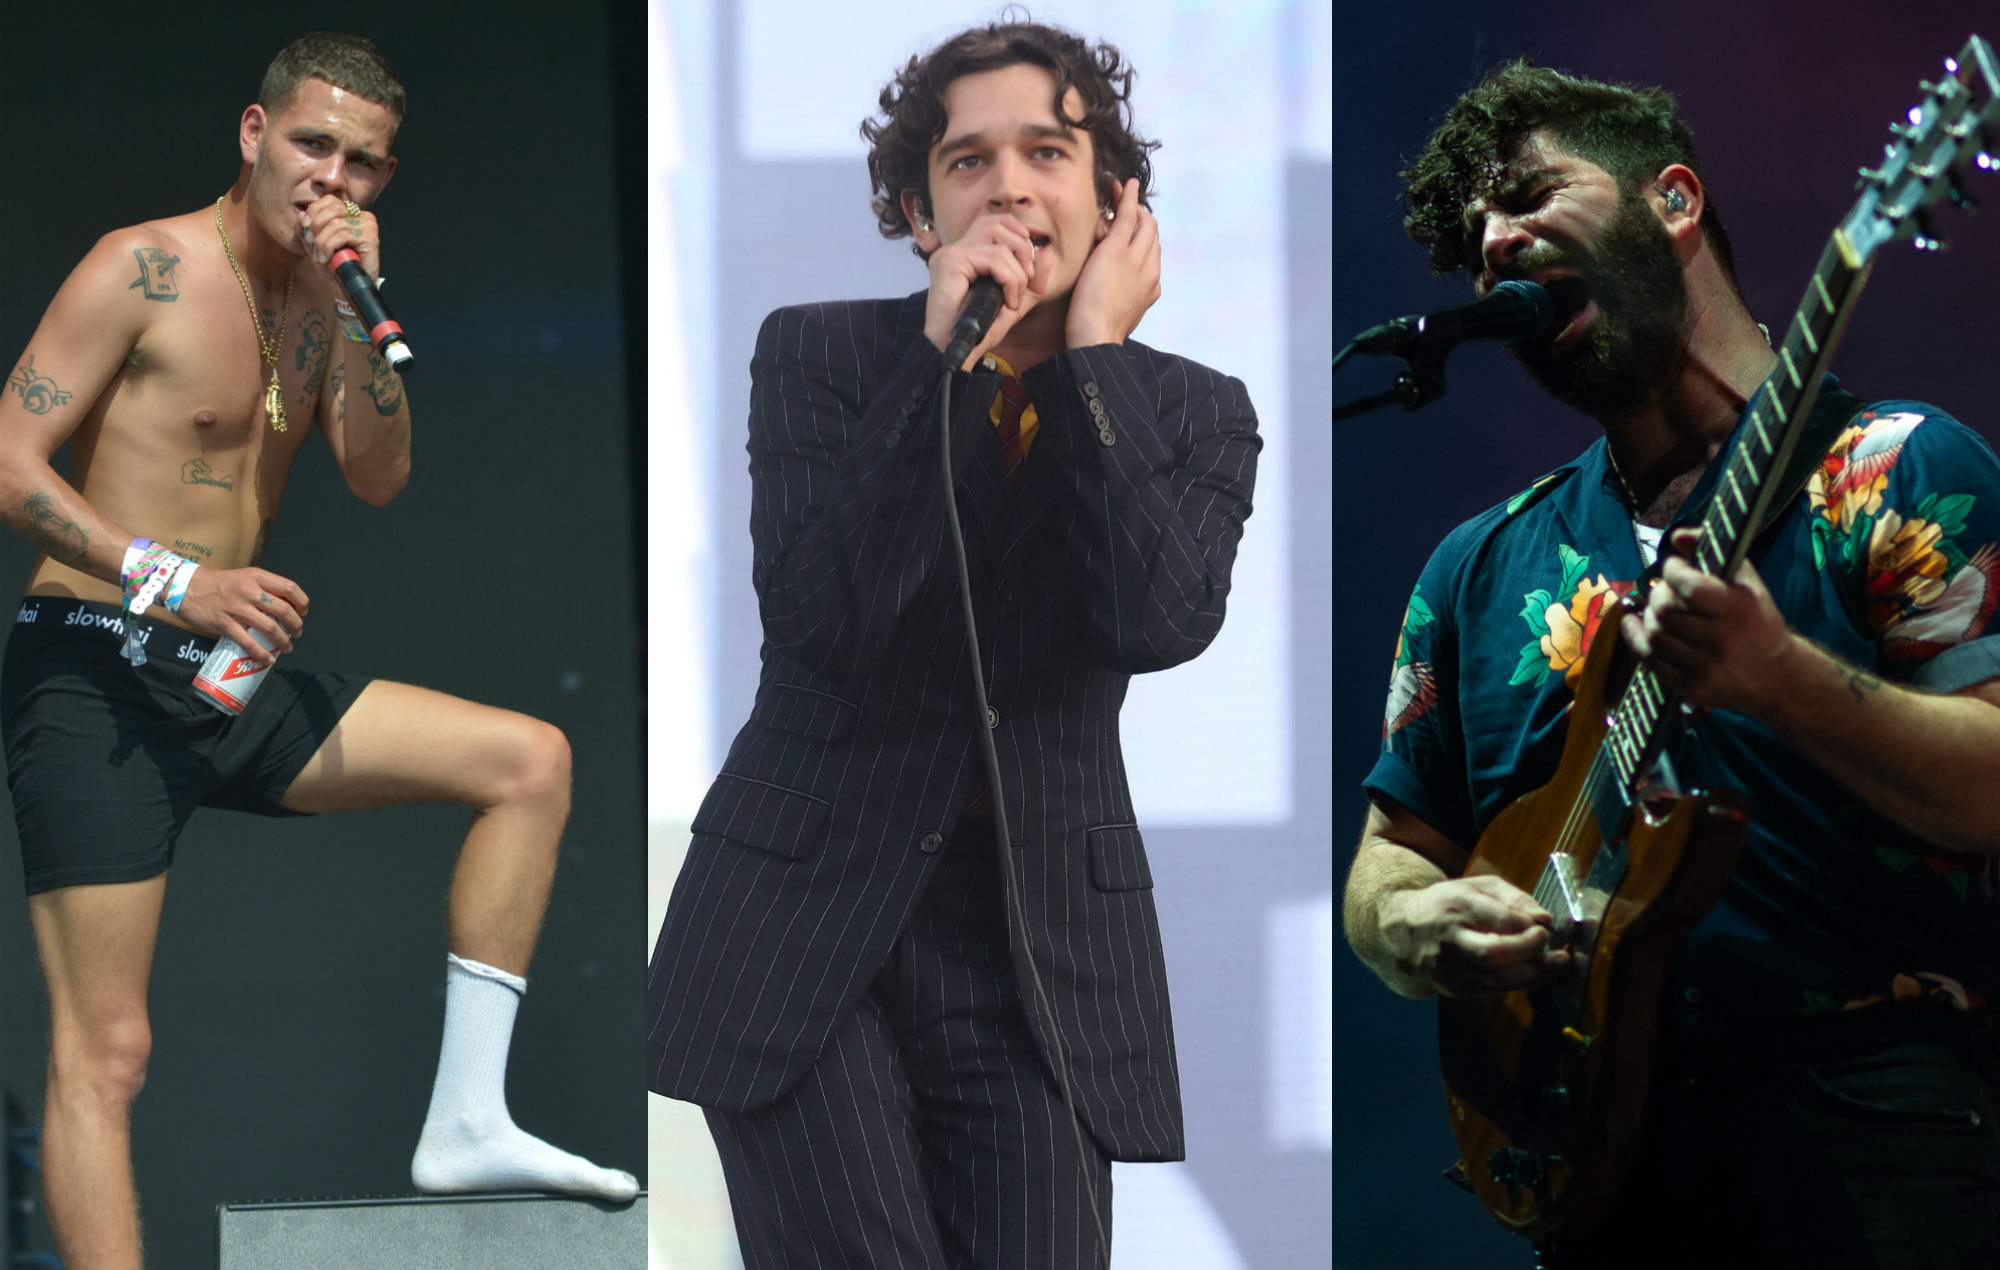 Slowthai / The 1975 / Foals